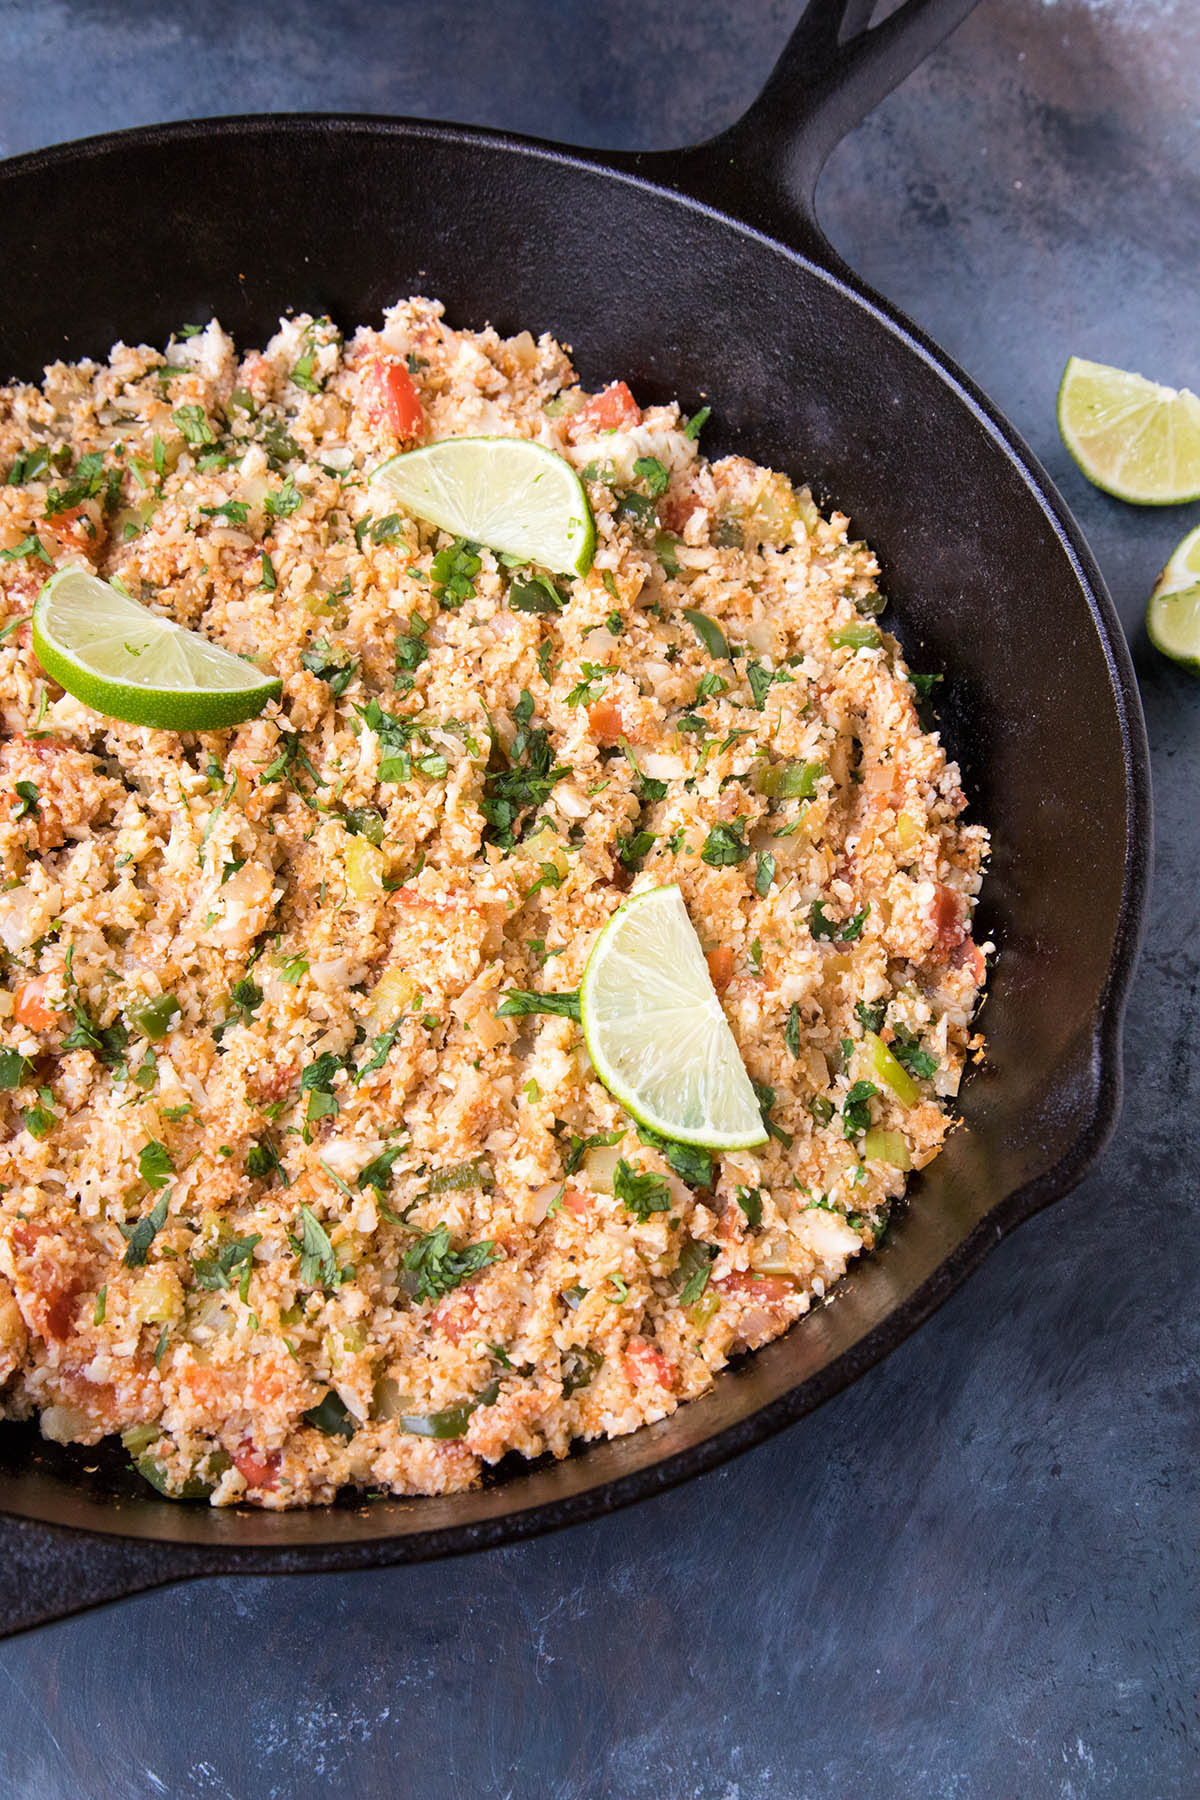 Cajun Cauliflower Rice in the pan. I could eat this every night of the week.